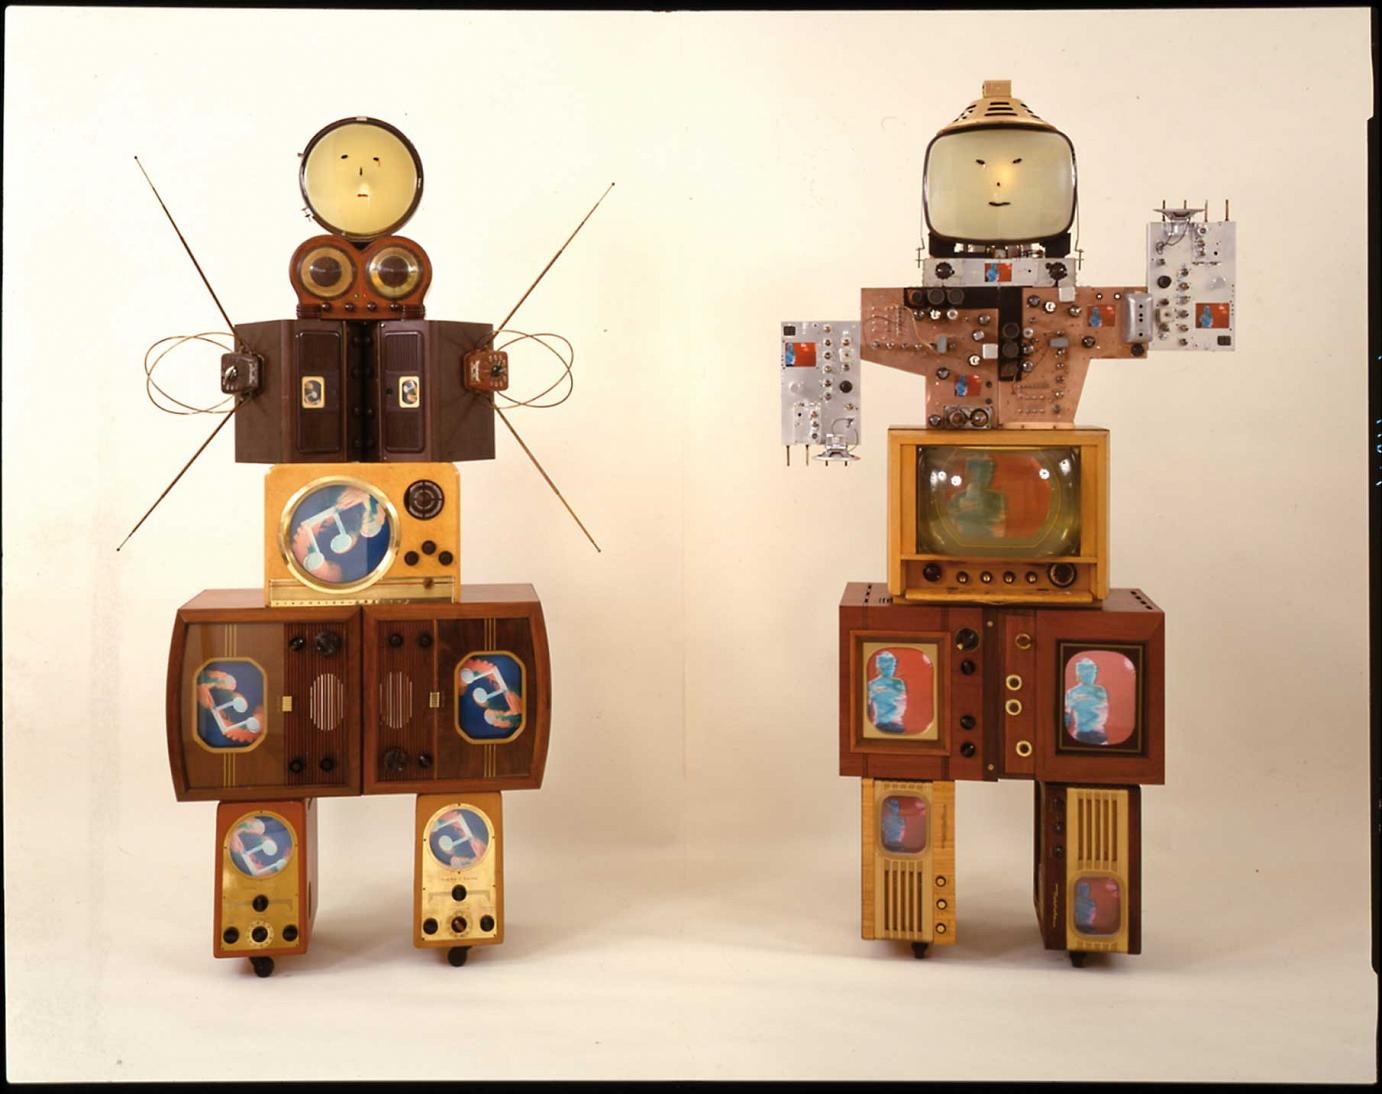 Nam June Paik »Family of Robot: Aunt and Uncle« · 1986 Mischtechnik, One-Channel-Videoskulpturen Photo: Cal Kowal © Carl Solway Gallery, Cincinnati (Ohio) & Nam June Paik Estate